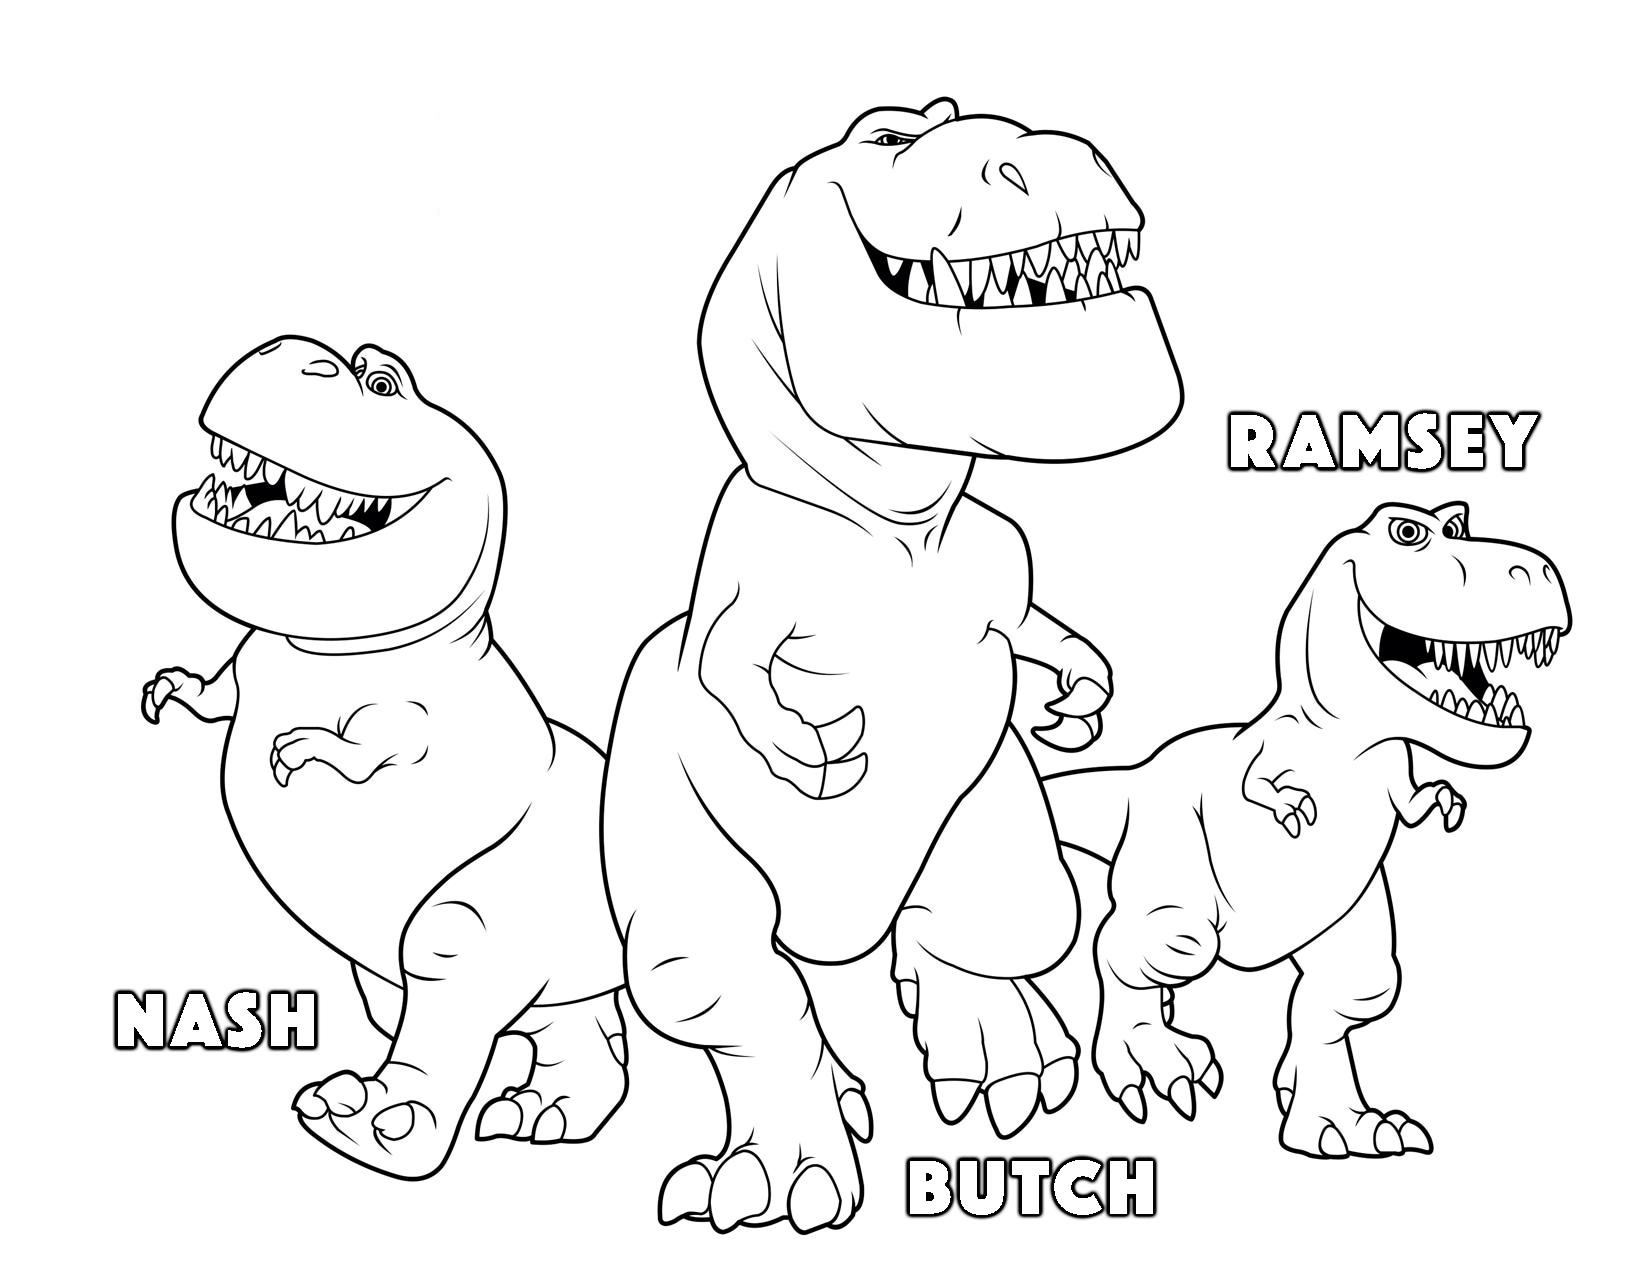 Dinosaur Kids Coloring Pages at GetDrawings.com | Free for personal ...